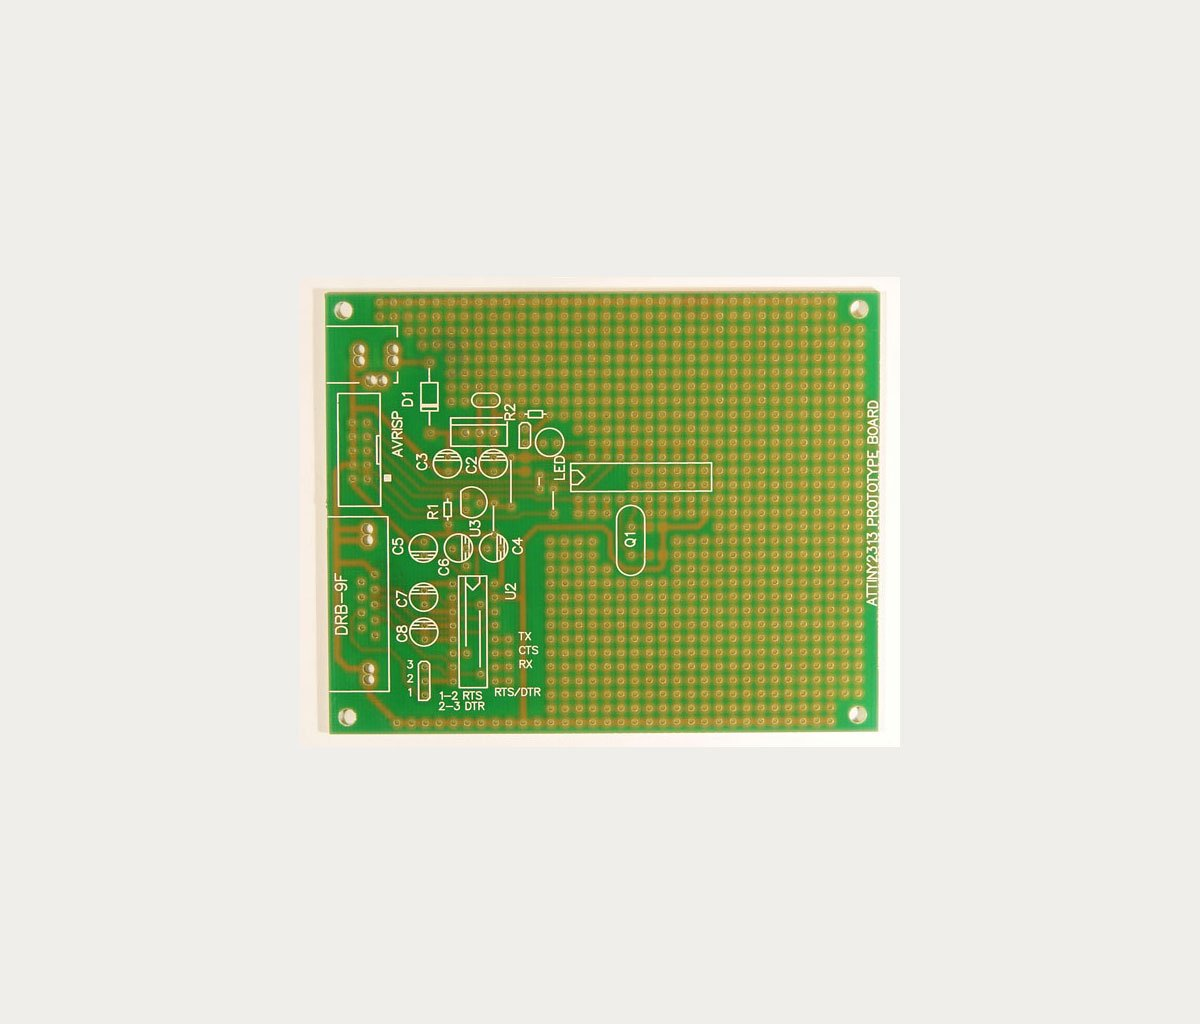 AVR ATMEL PROTOTYPE BOARD ATtiny2313 AT90S2313